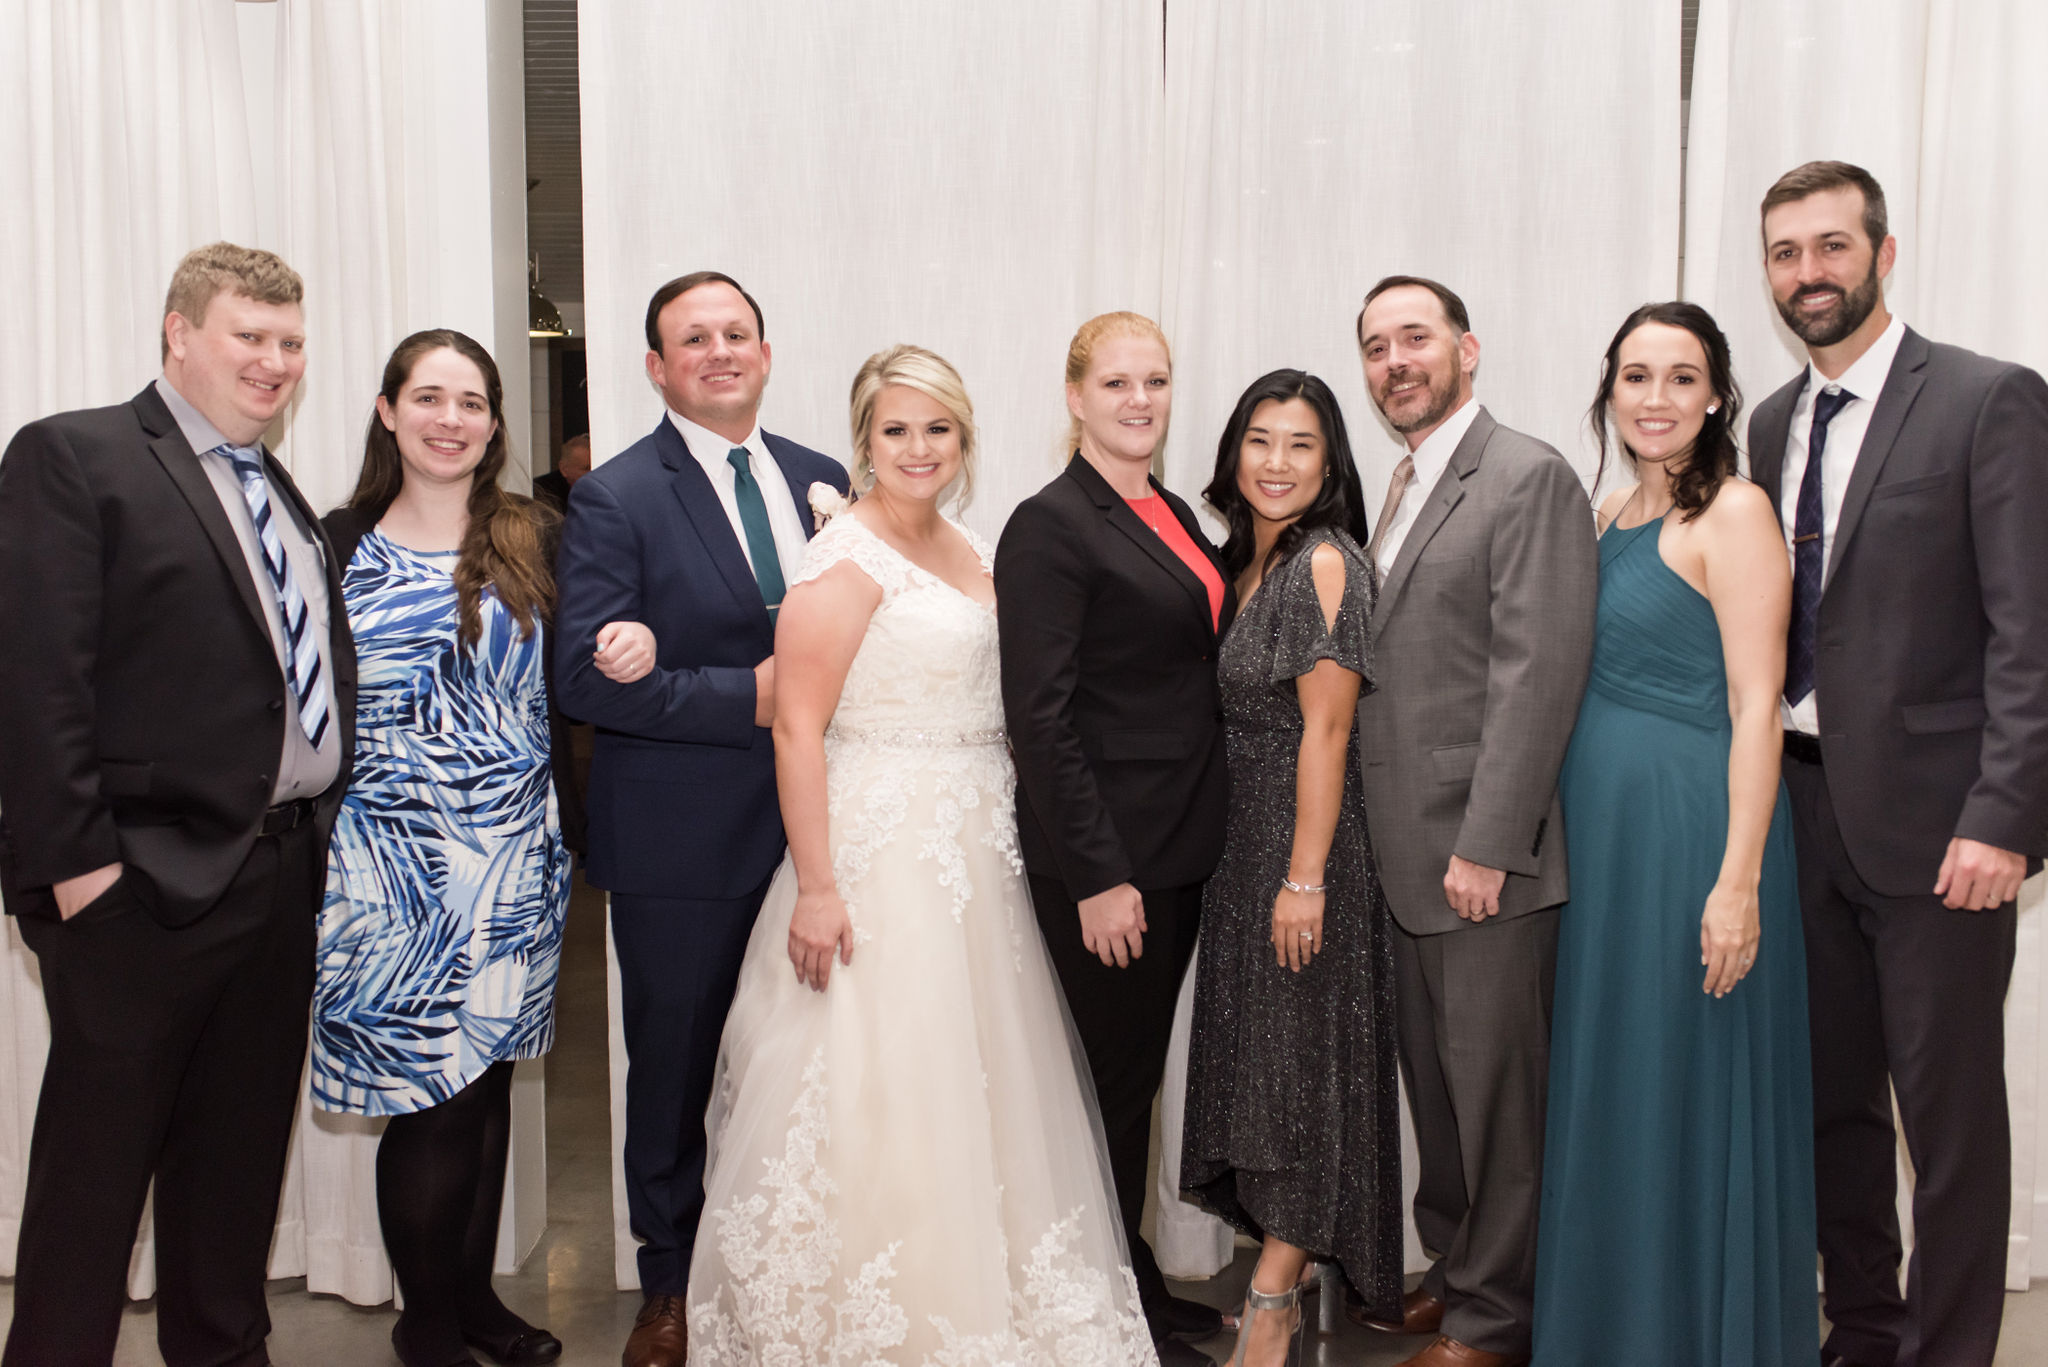 Pictured here are 4 couples, whose weddings were all planned by Christie! (Left to right) Brandon & Brandi 11/2016, Chad & Kaitlen 11/2018, Anna & William 10/2016, Erica & Ryan 06/2015.   Credit: Eric & Jenn Photography